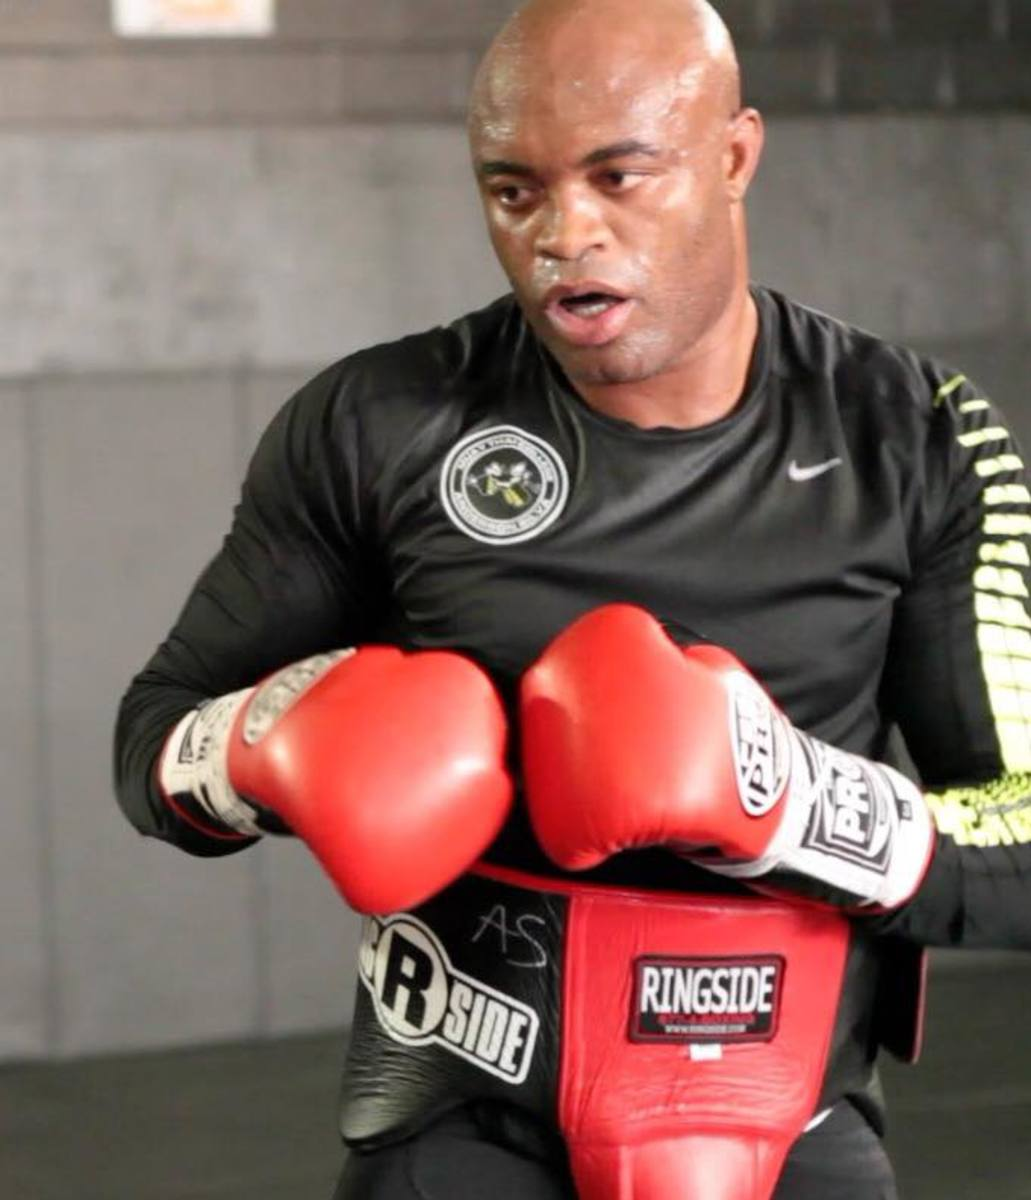 Anderson Silva's record includes 34 wins with 20 knockouts, and only six losses.